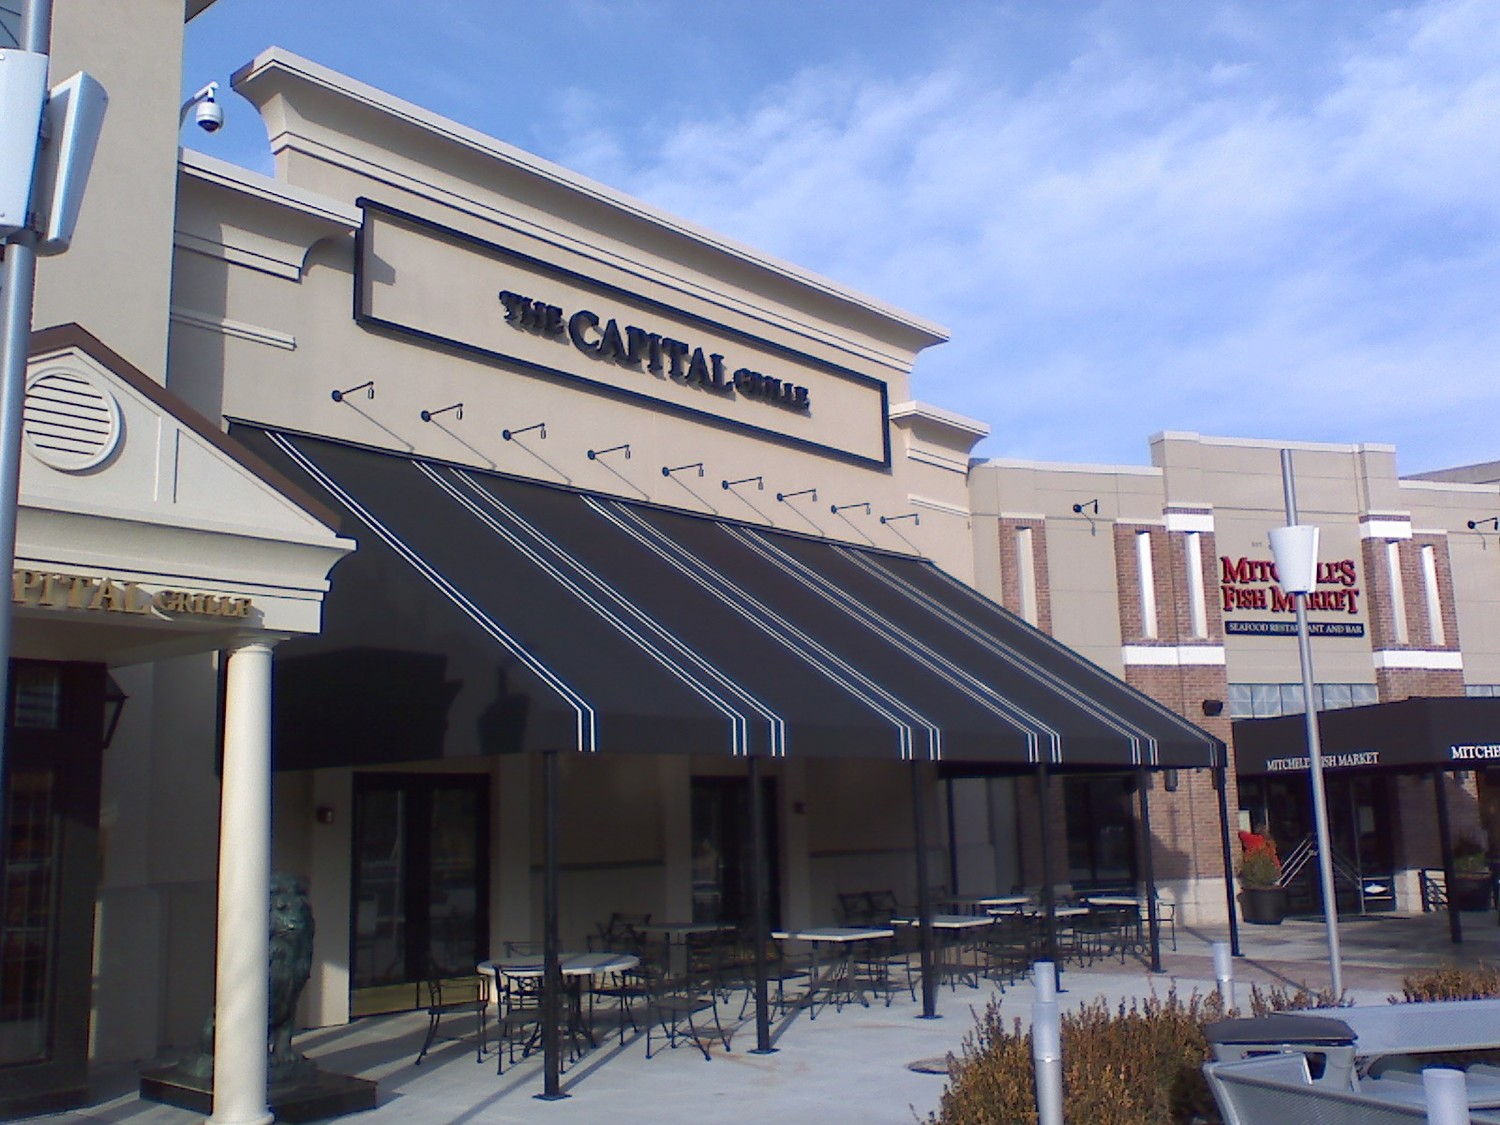 Commercial Awnings Midwest Outdoor Living